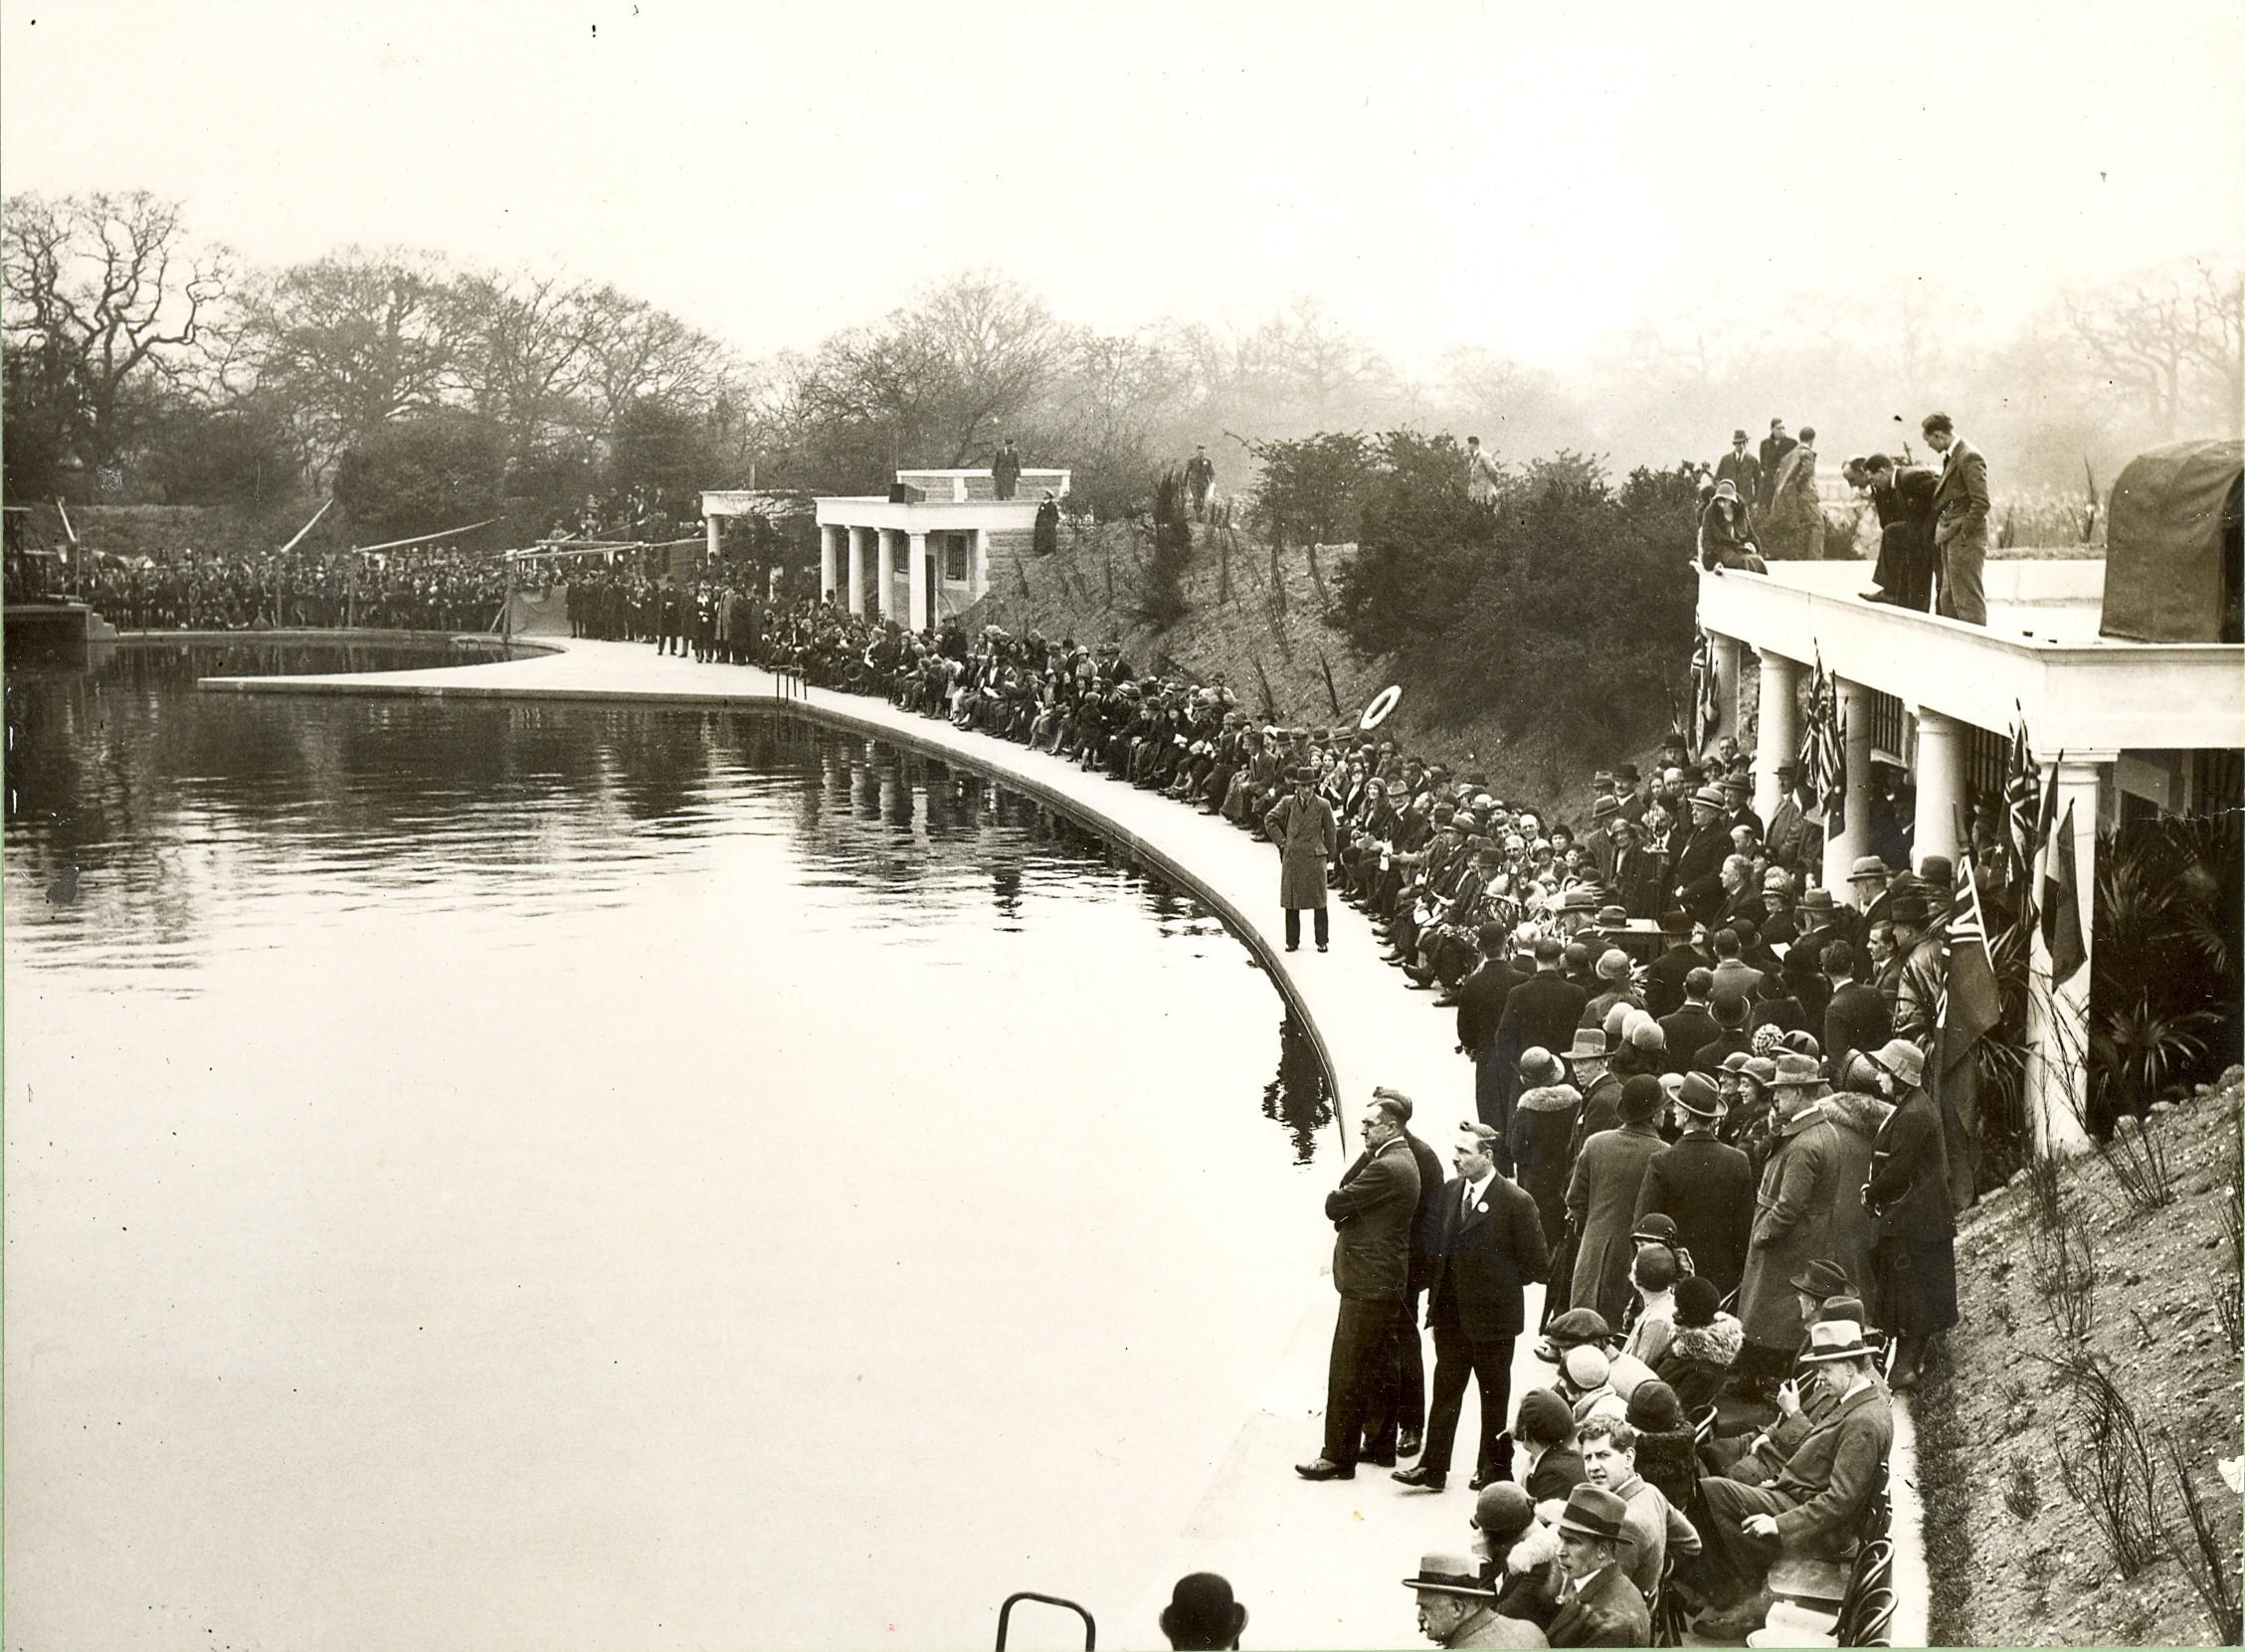 Leytonstone's Lost Lido